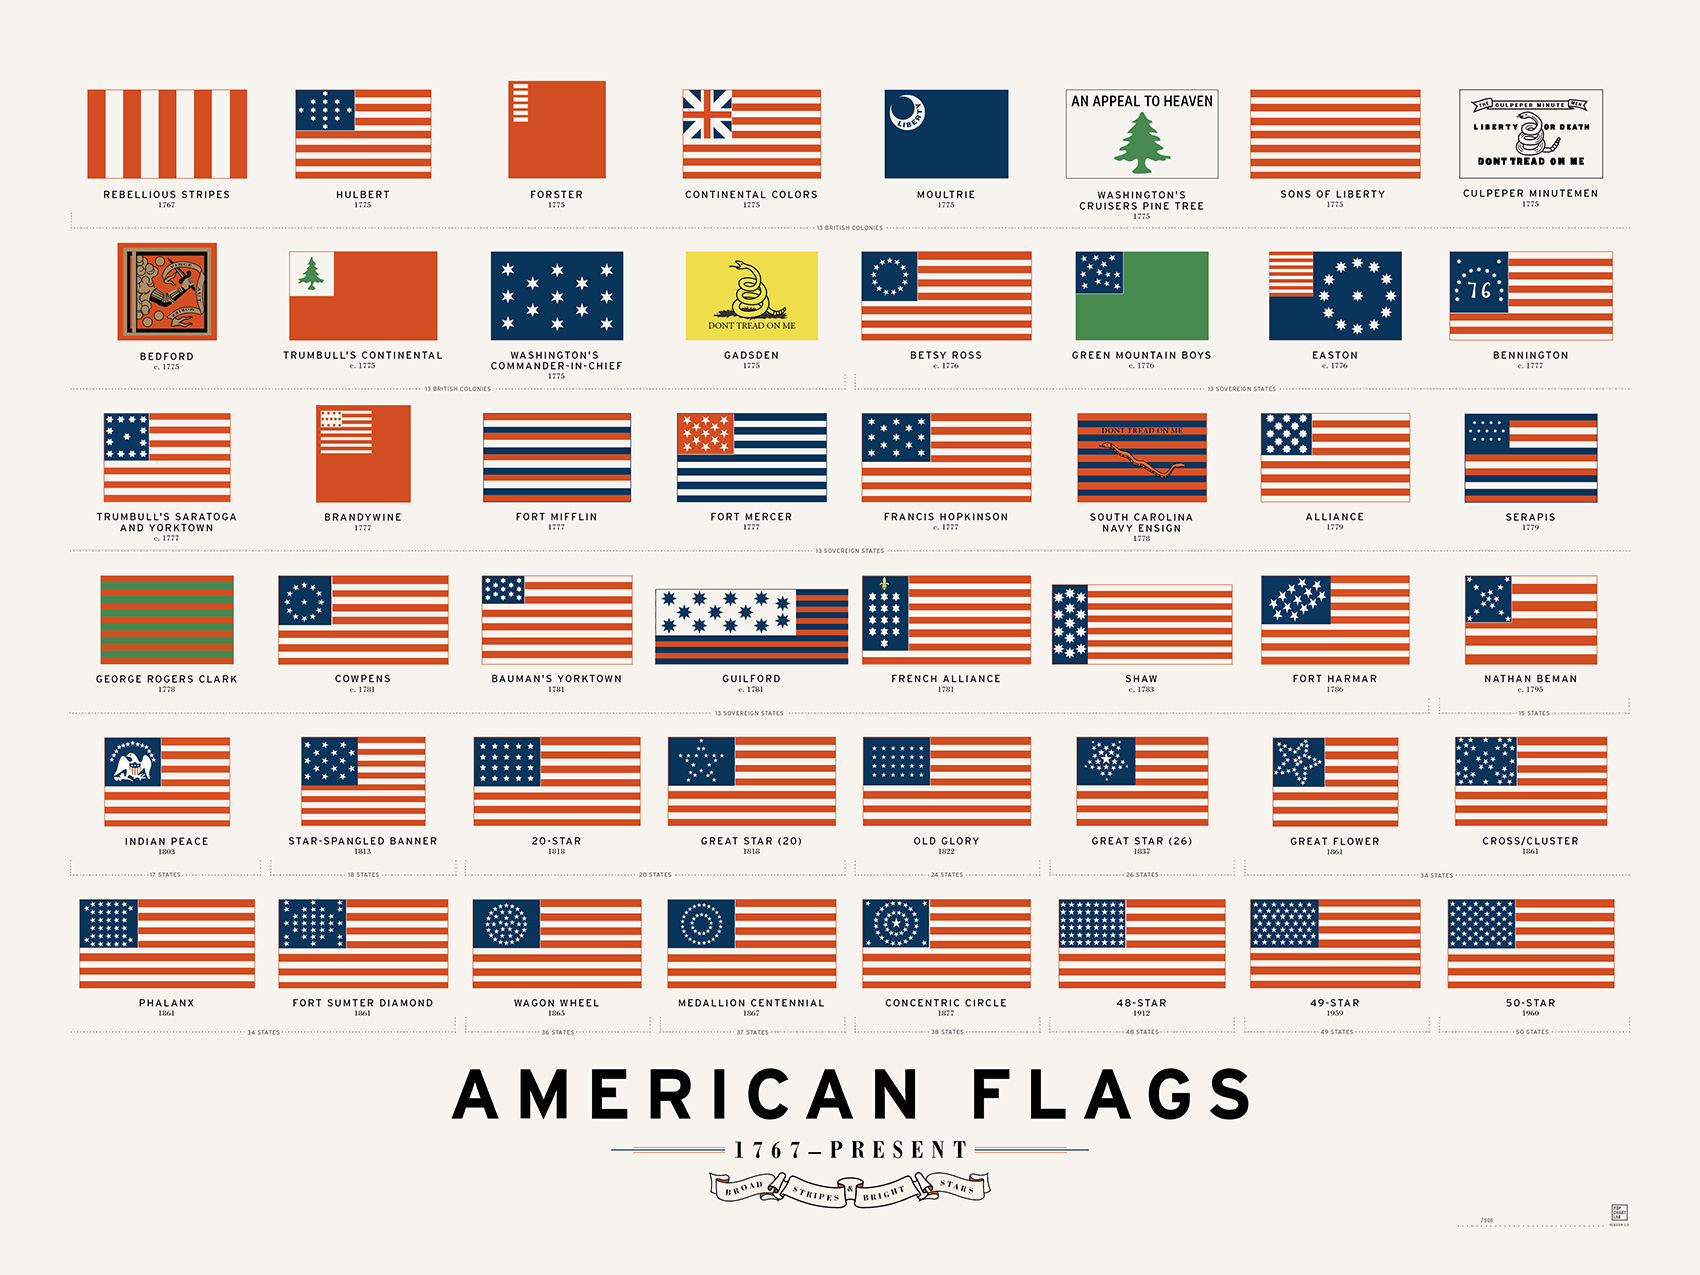 Infographic American Flags Present